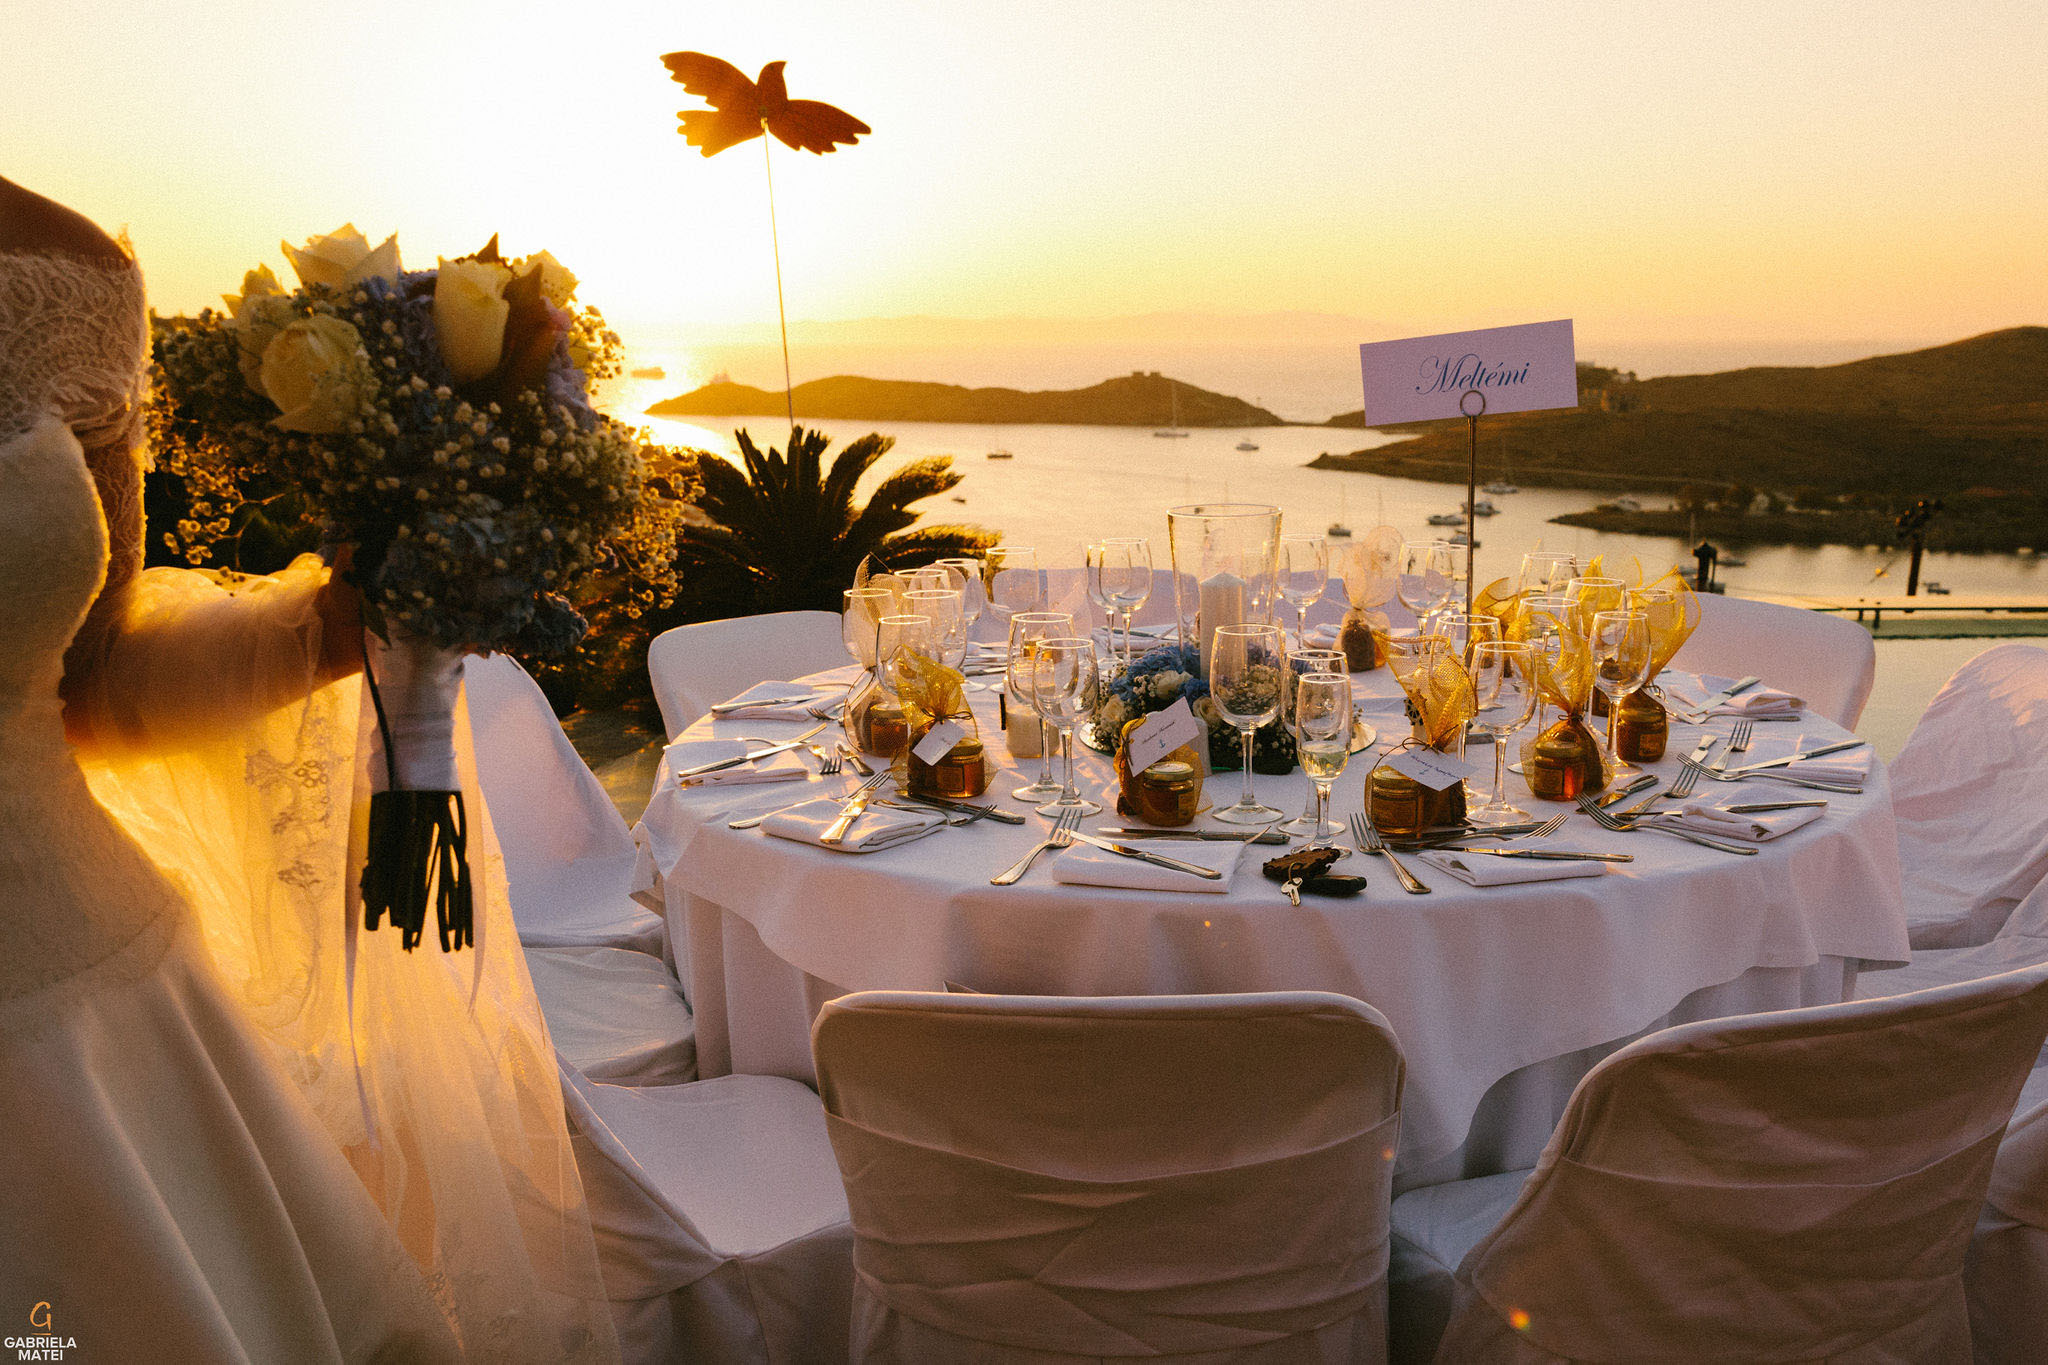 Aegis Suites wedding location on Kea Island, wedding decor